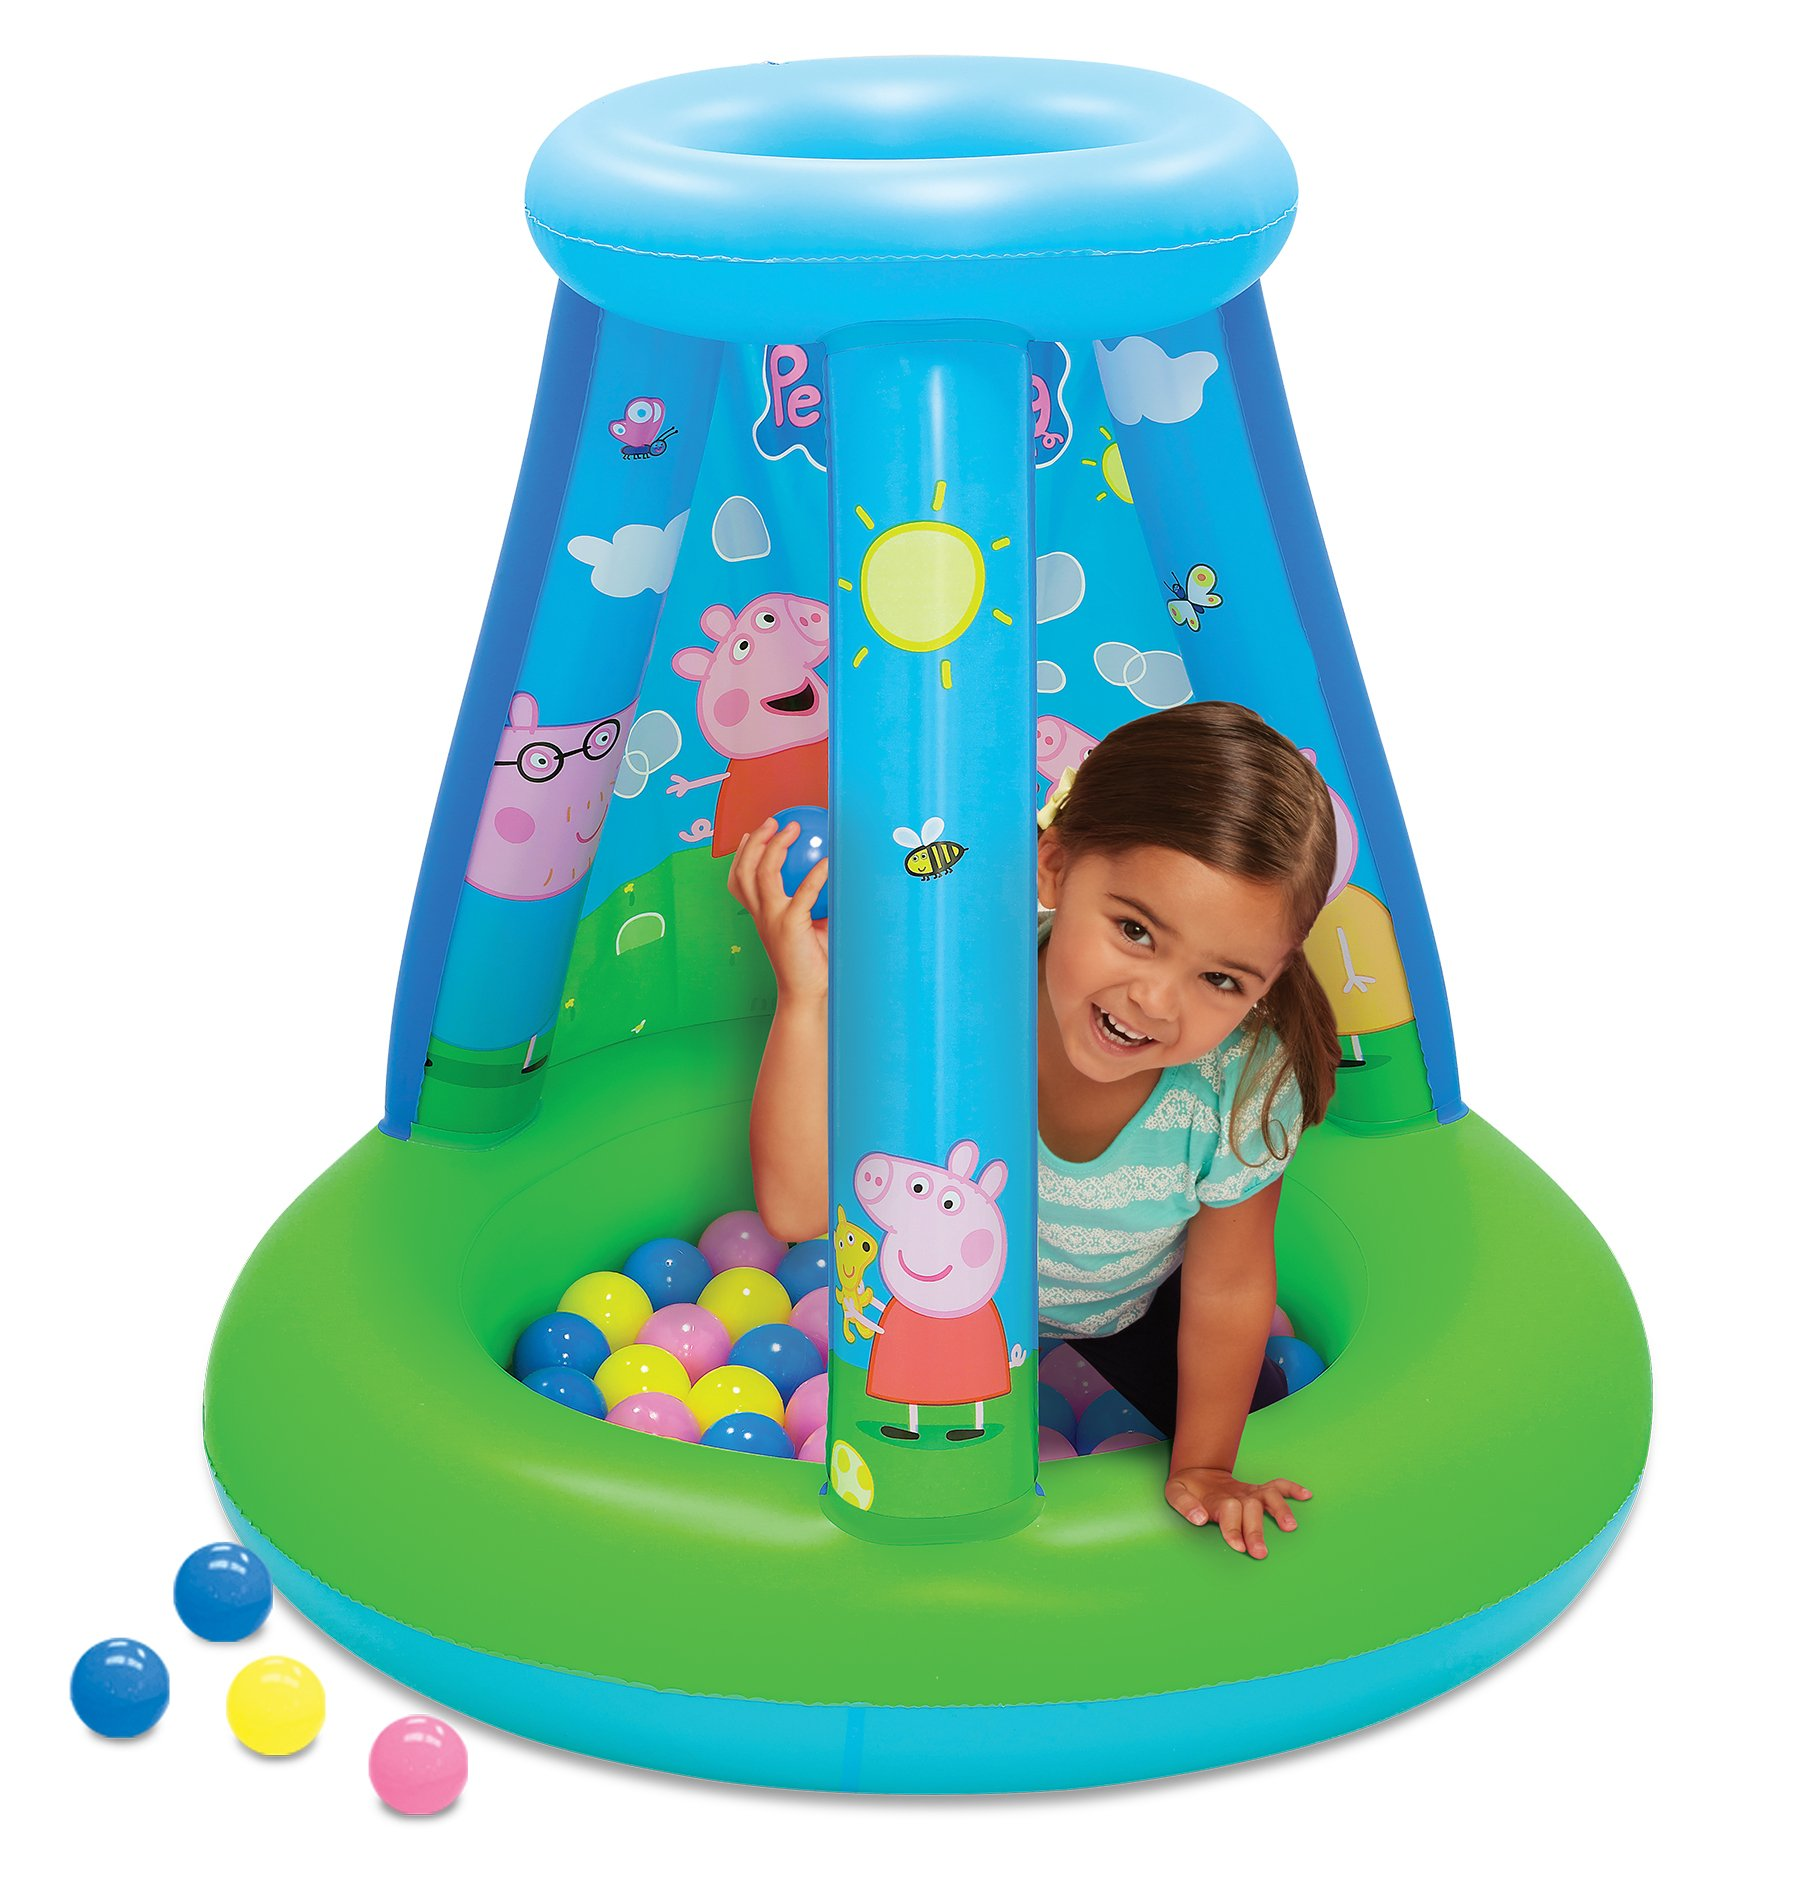 Peppa Pig Ball Pit, 1 Inflatable & 15 Sof-Flex Balls, Blue/Green, 28''W x 28''D x 33''H